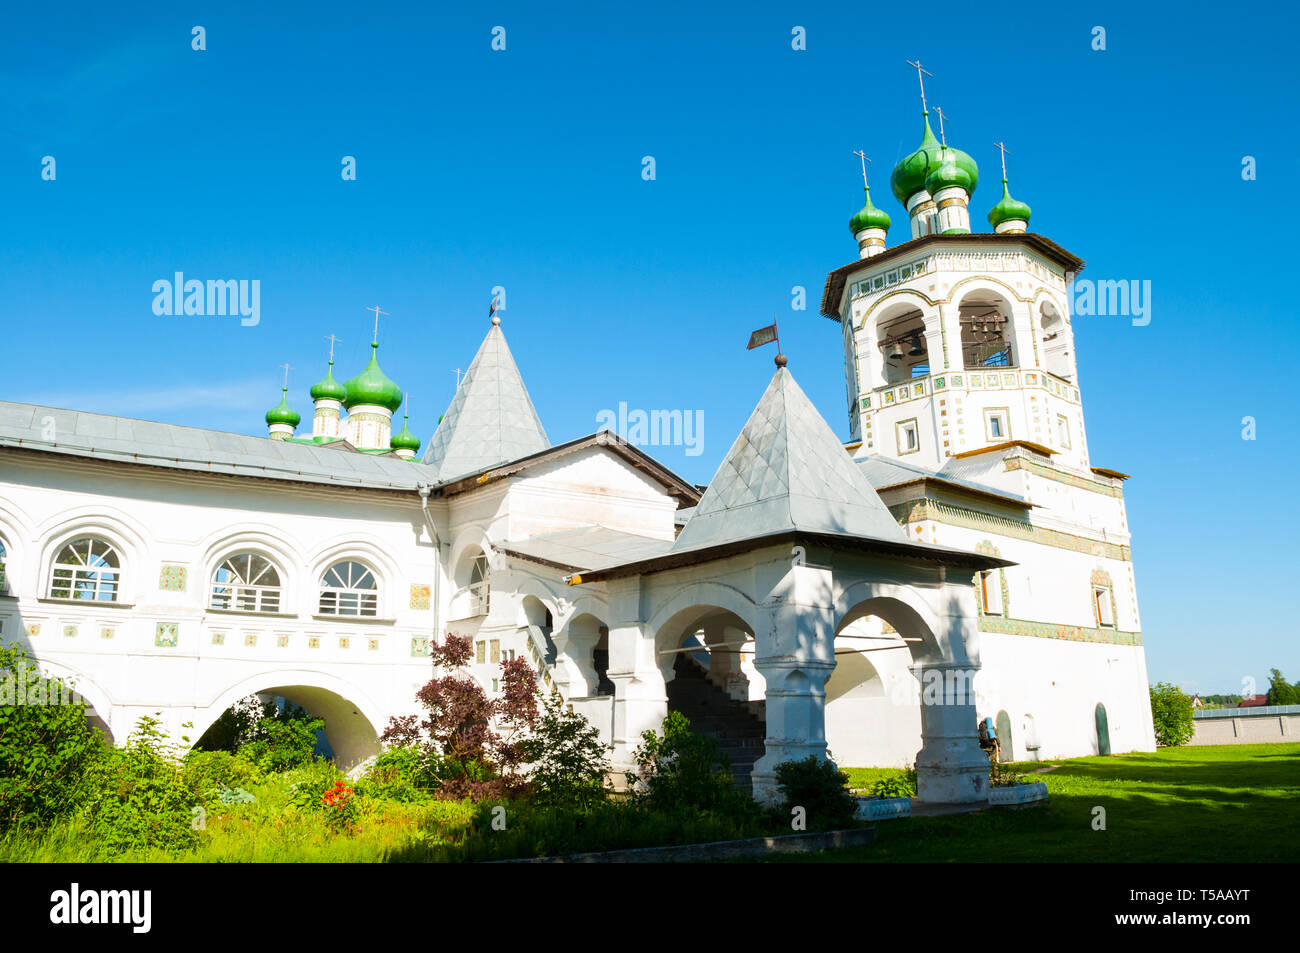 Veliky Novgorod, Russia. Belfry and architectural ensemble in Nicholas Vyazhischsky stauropegic female monastery - summer view - Stock Image